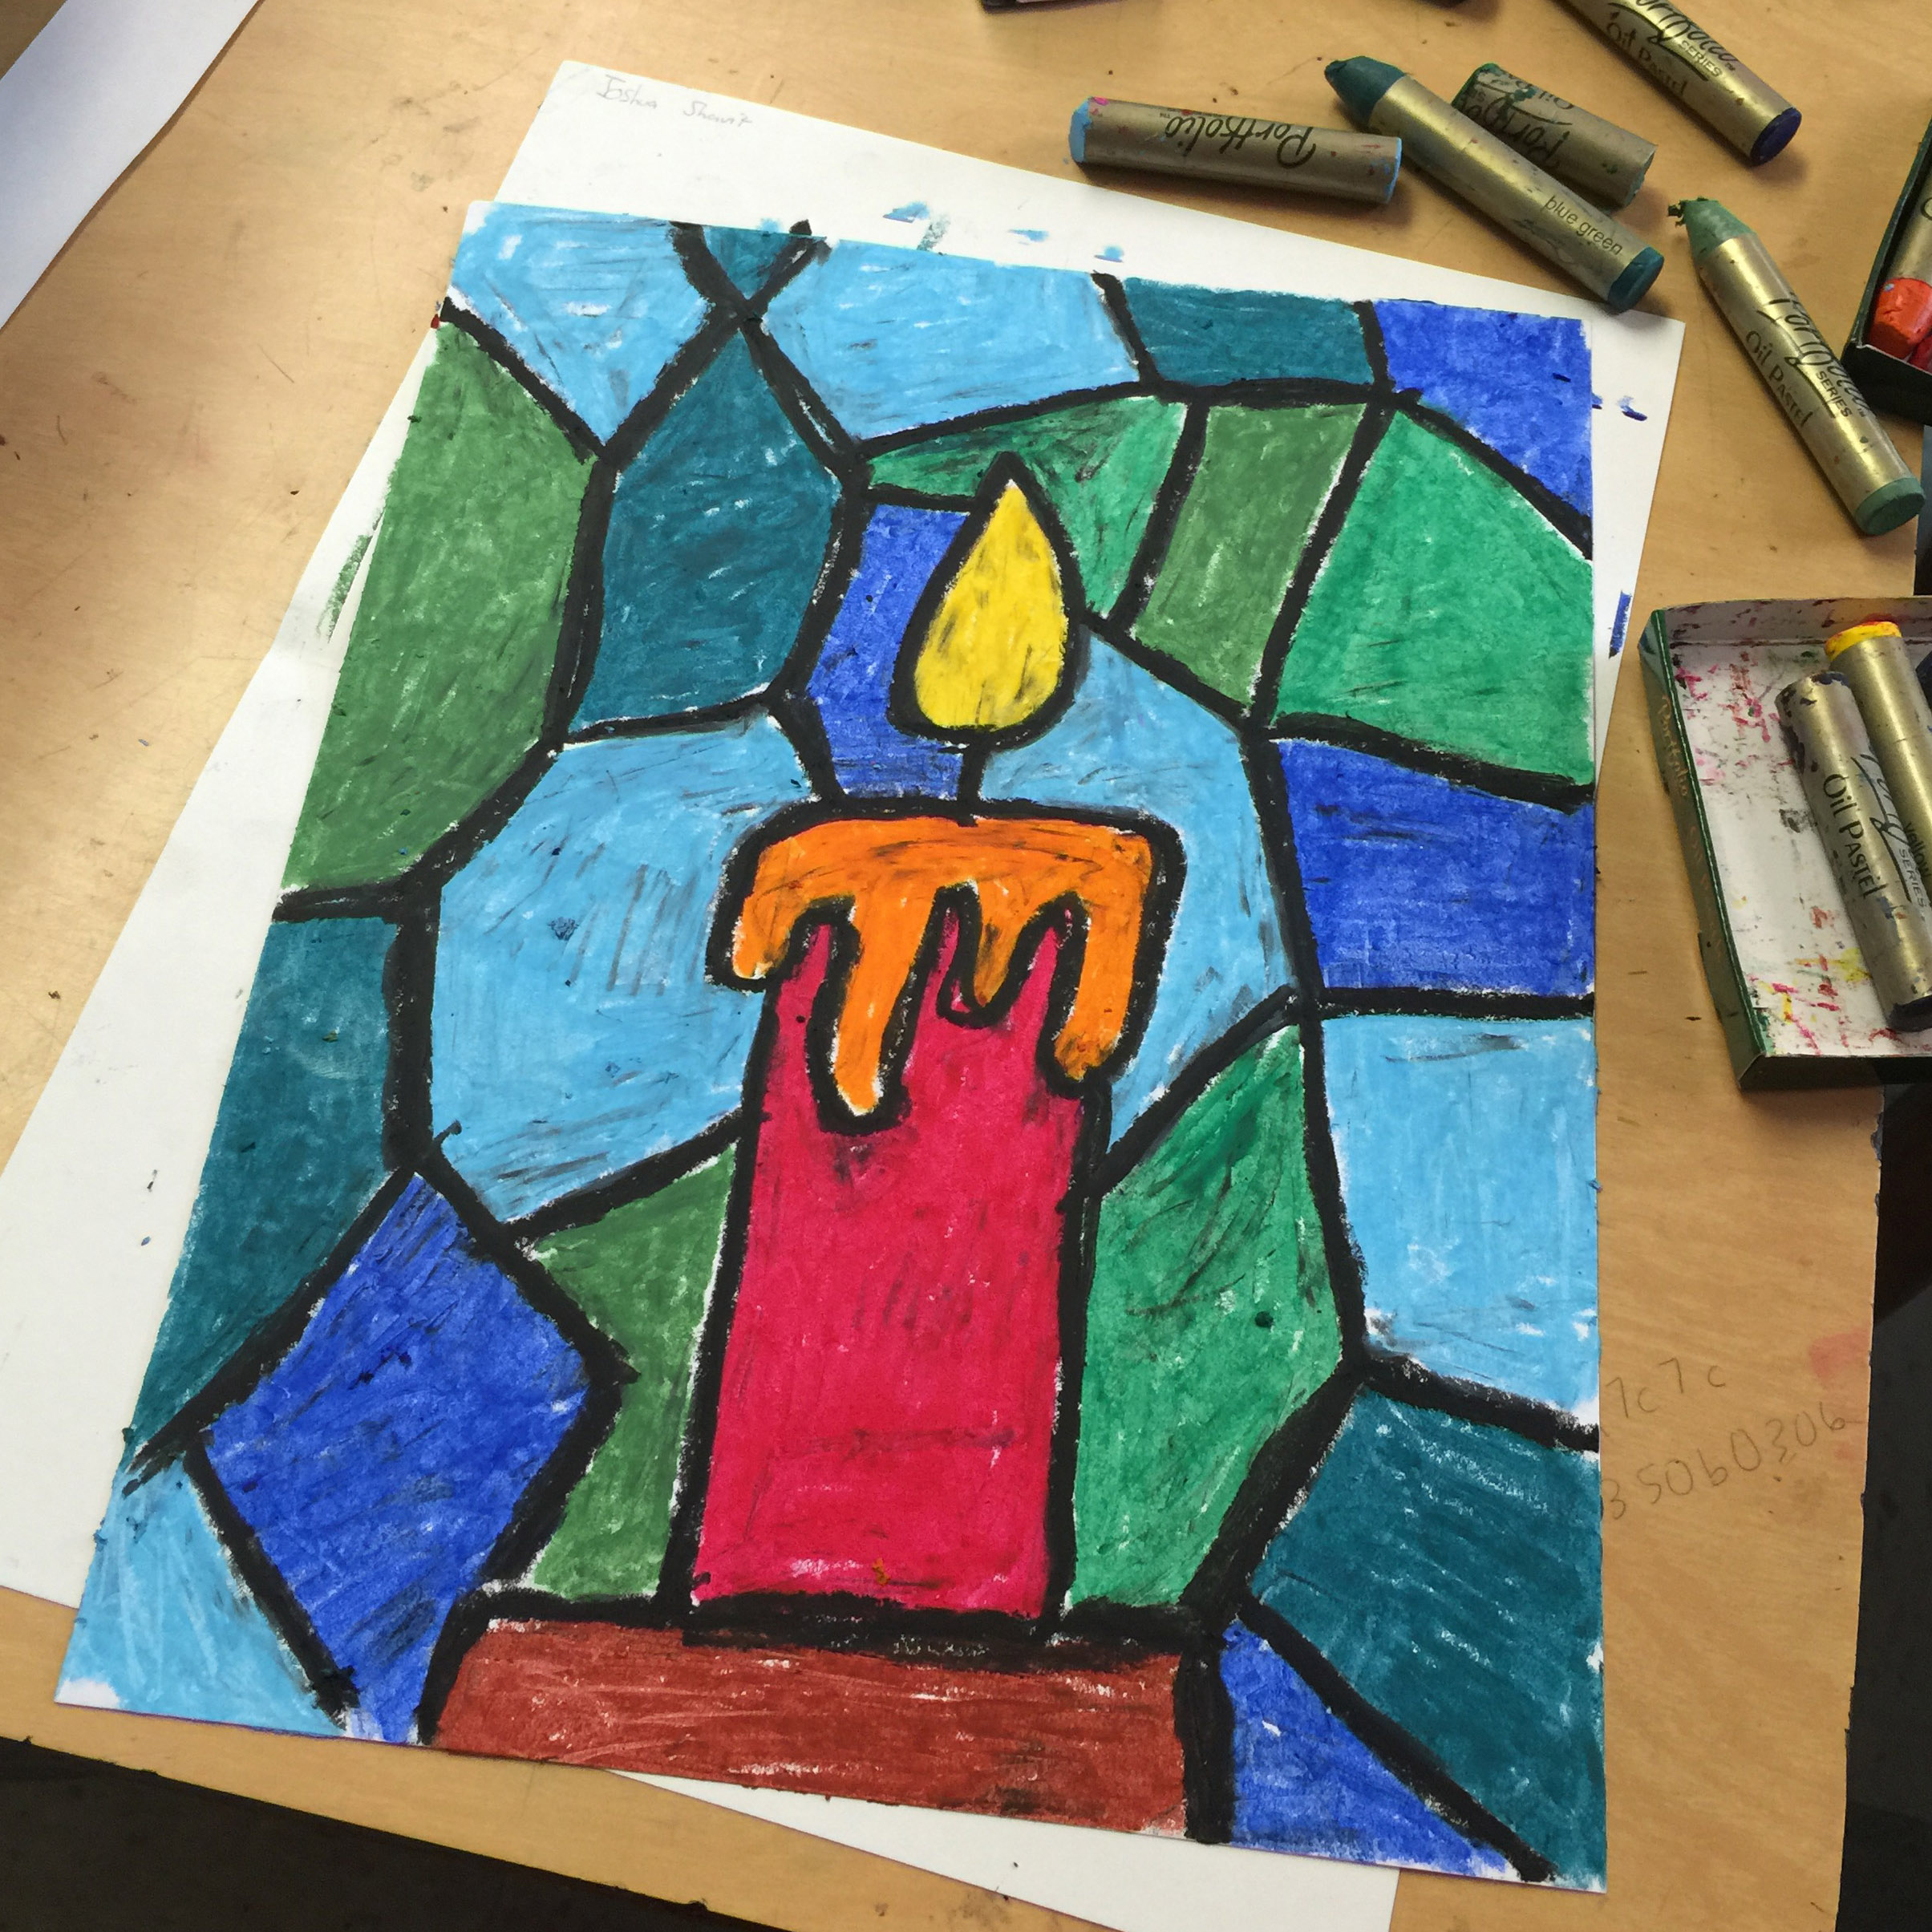 Oil Pastel Candle Drawing Art Projects For Kids